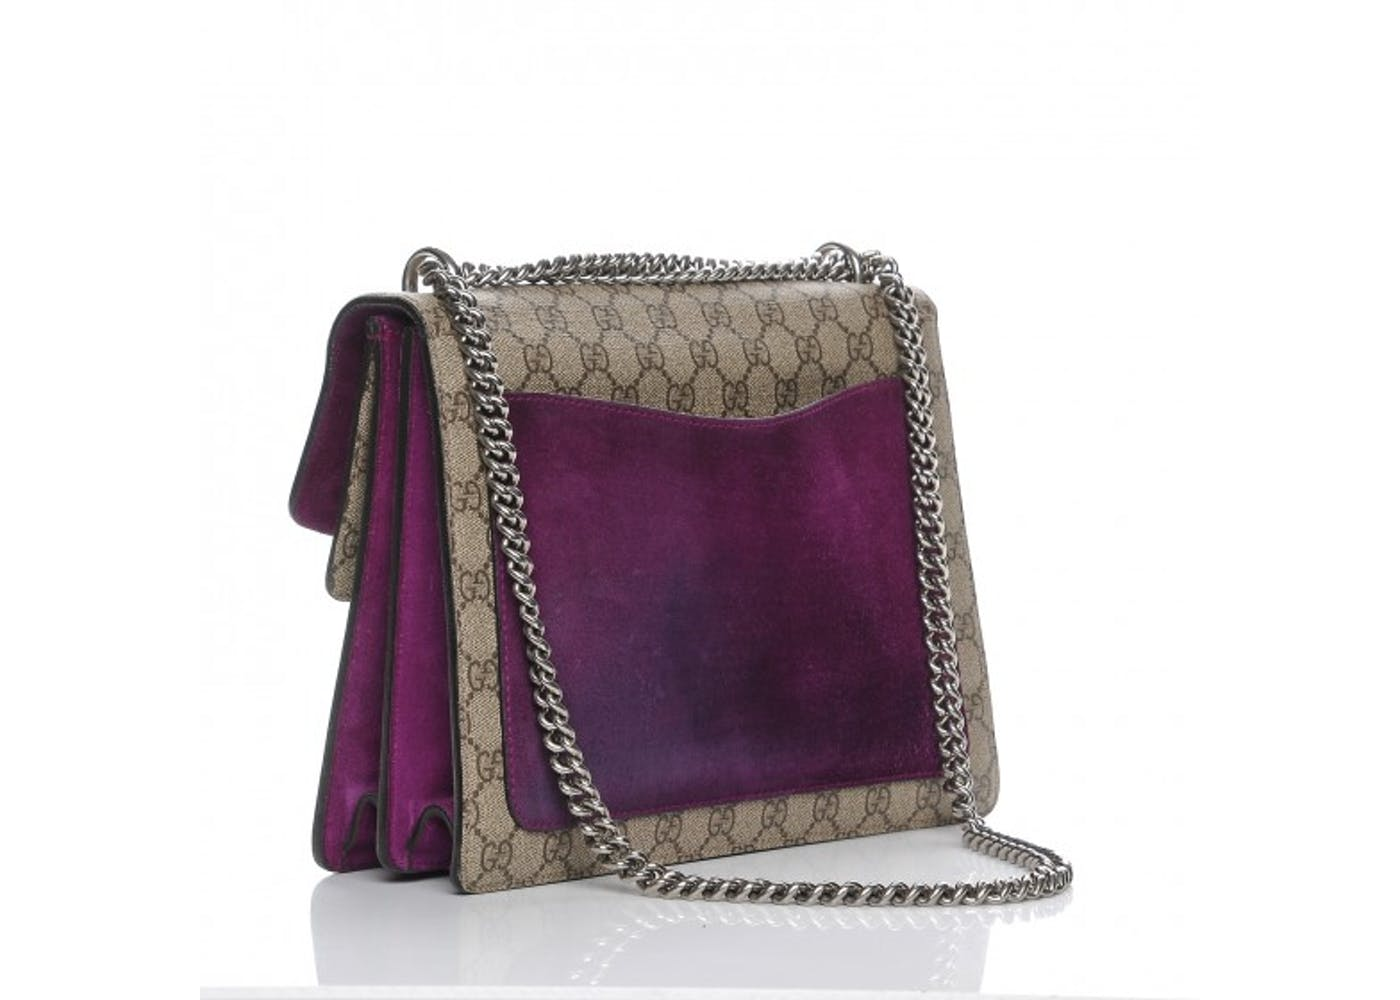 Gucci Dionysus Purple